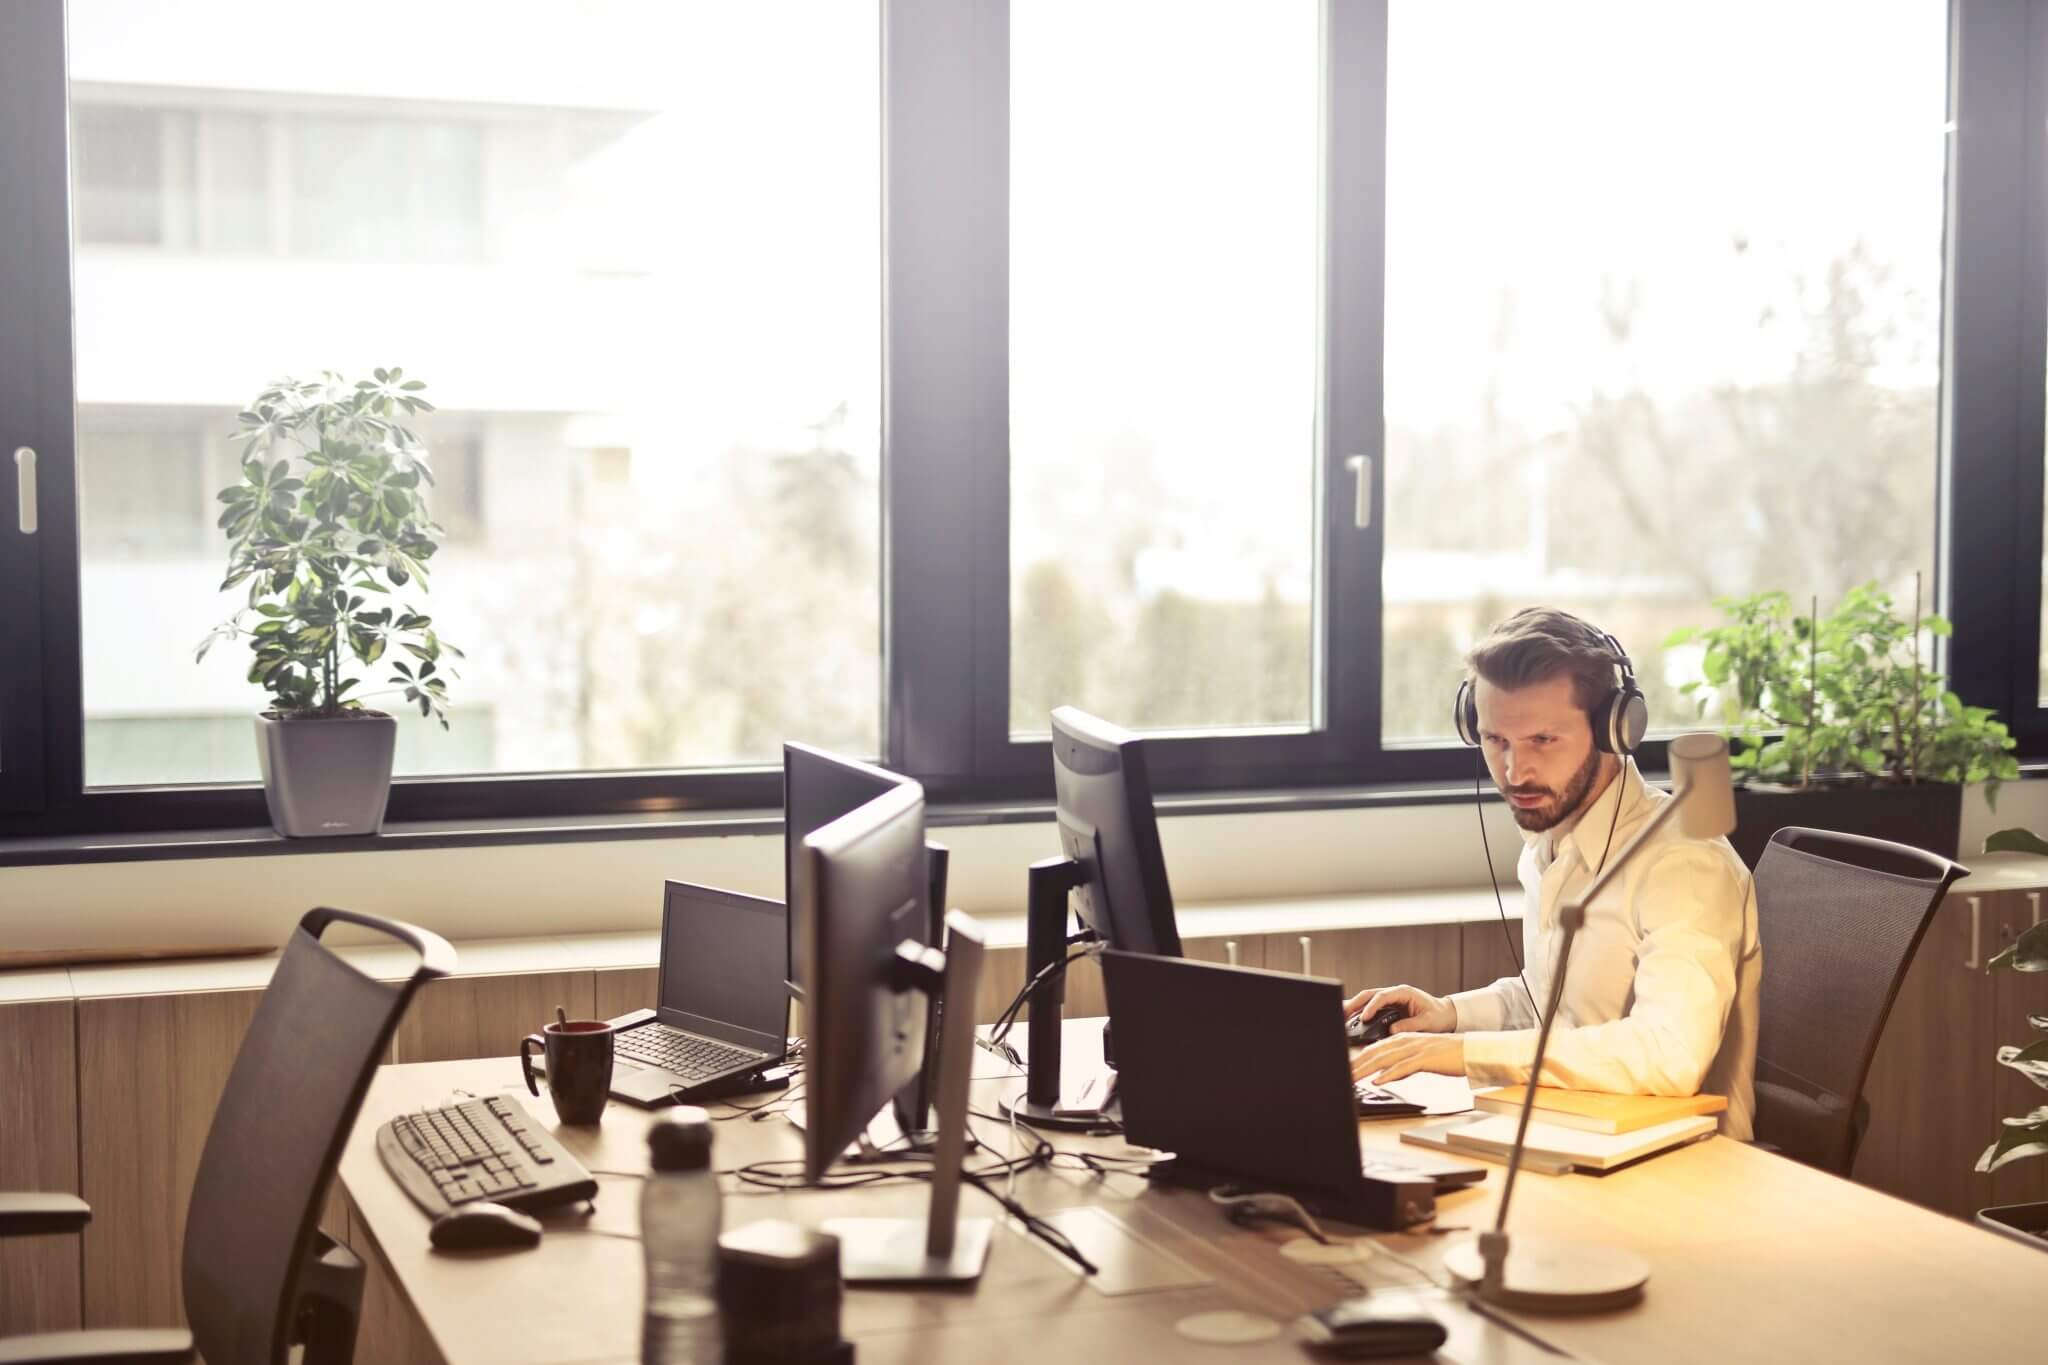 Solo business guy with a headset sitting at a desk typing on the computer.